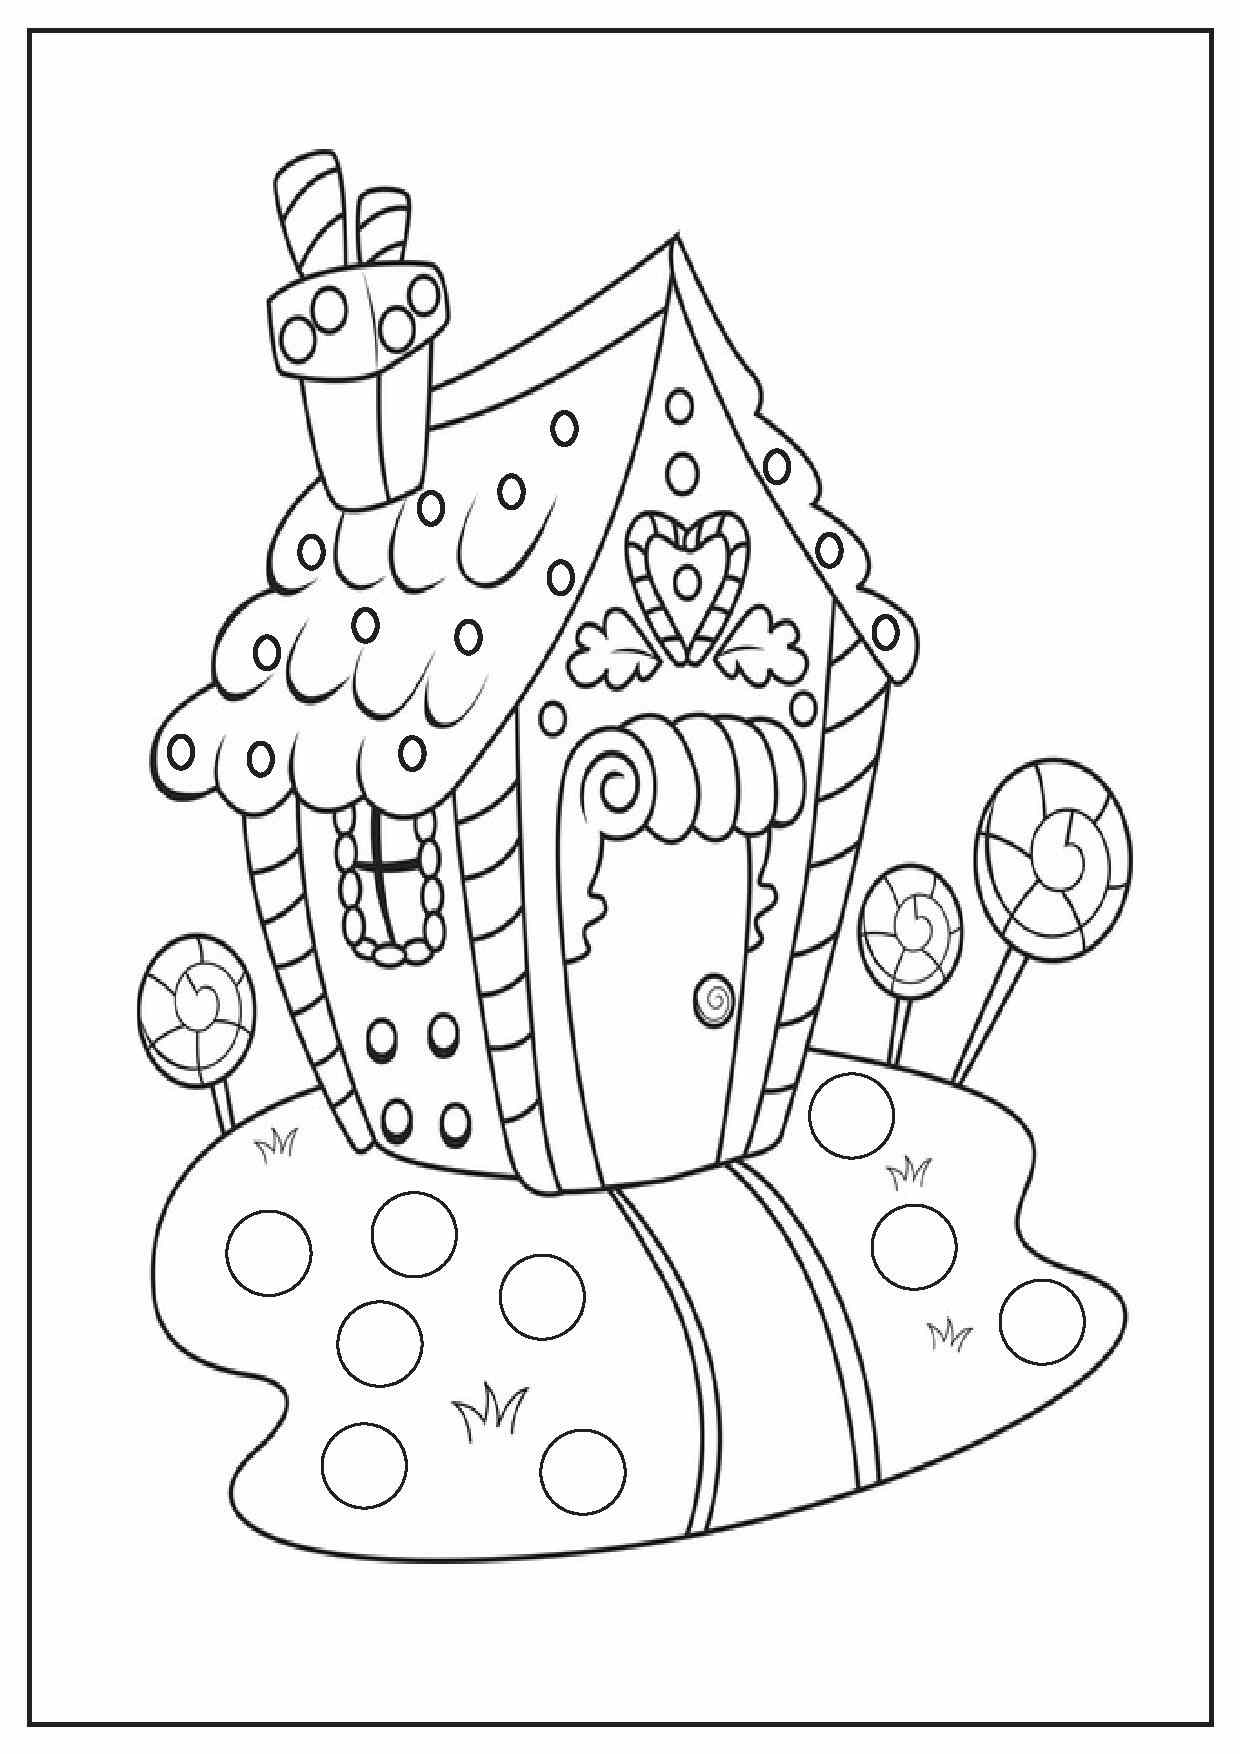 Christmas Coloring Pages Free To Print With Printable